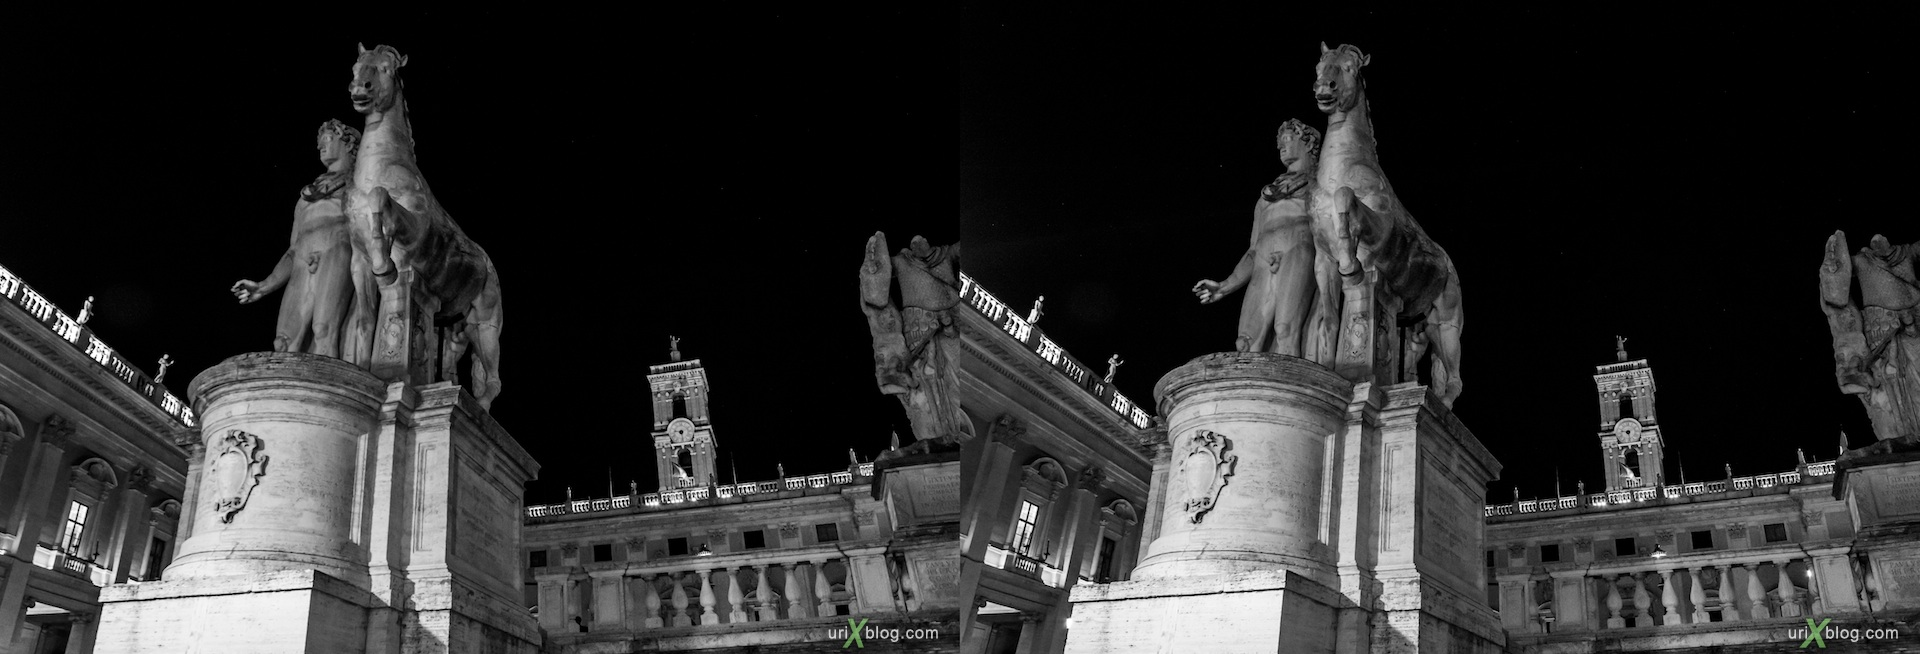 2012, statues of the Dioscuri, Castor and Pollux, night, Capitoline Square, B/W, Rome, Italy, Europe, 3D, stereo pair, cross-eyed, crossview, cross view stereo pair